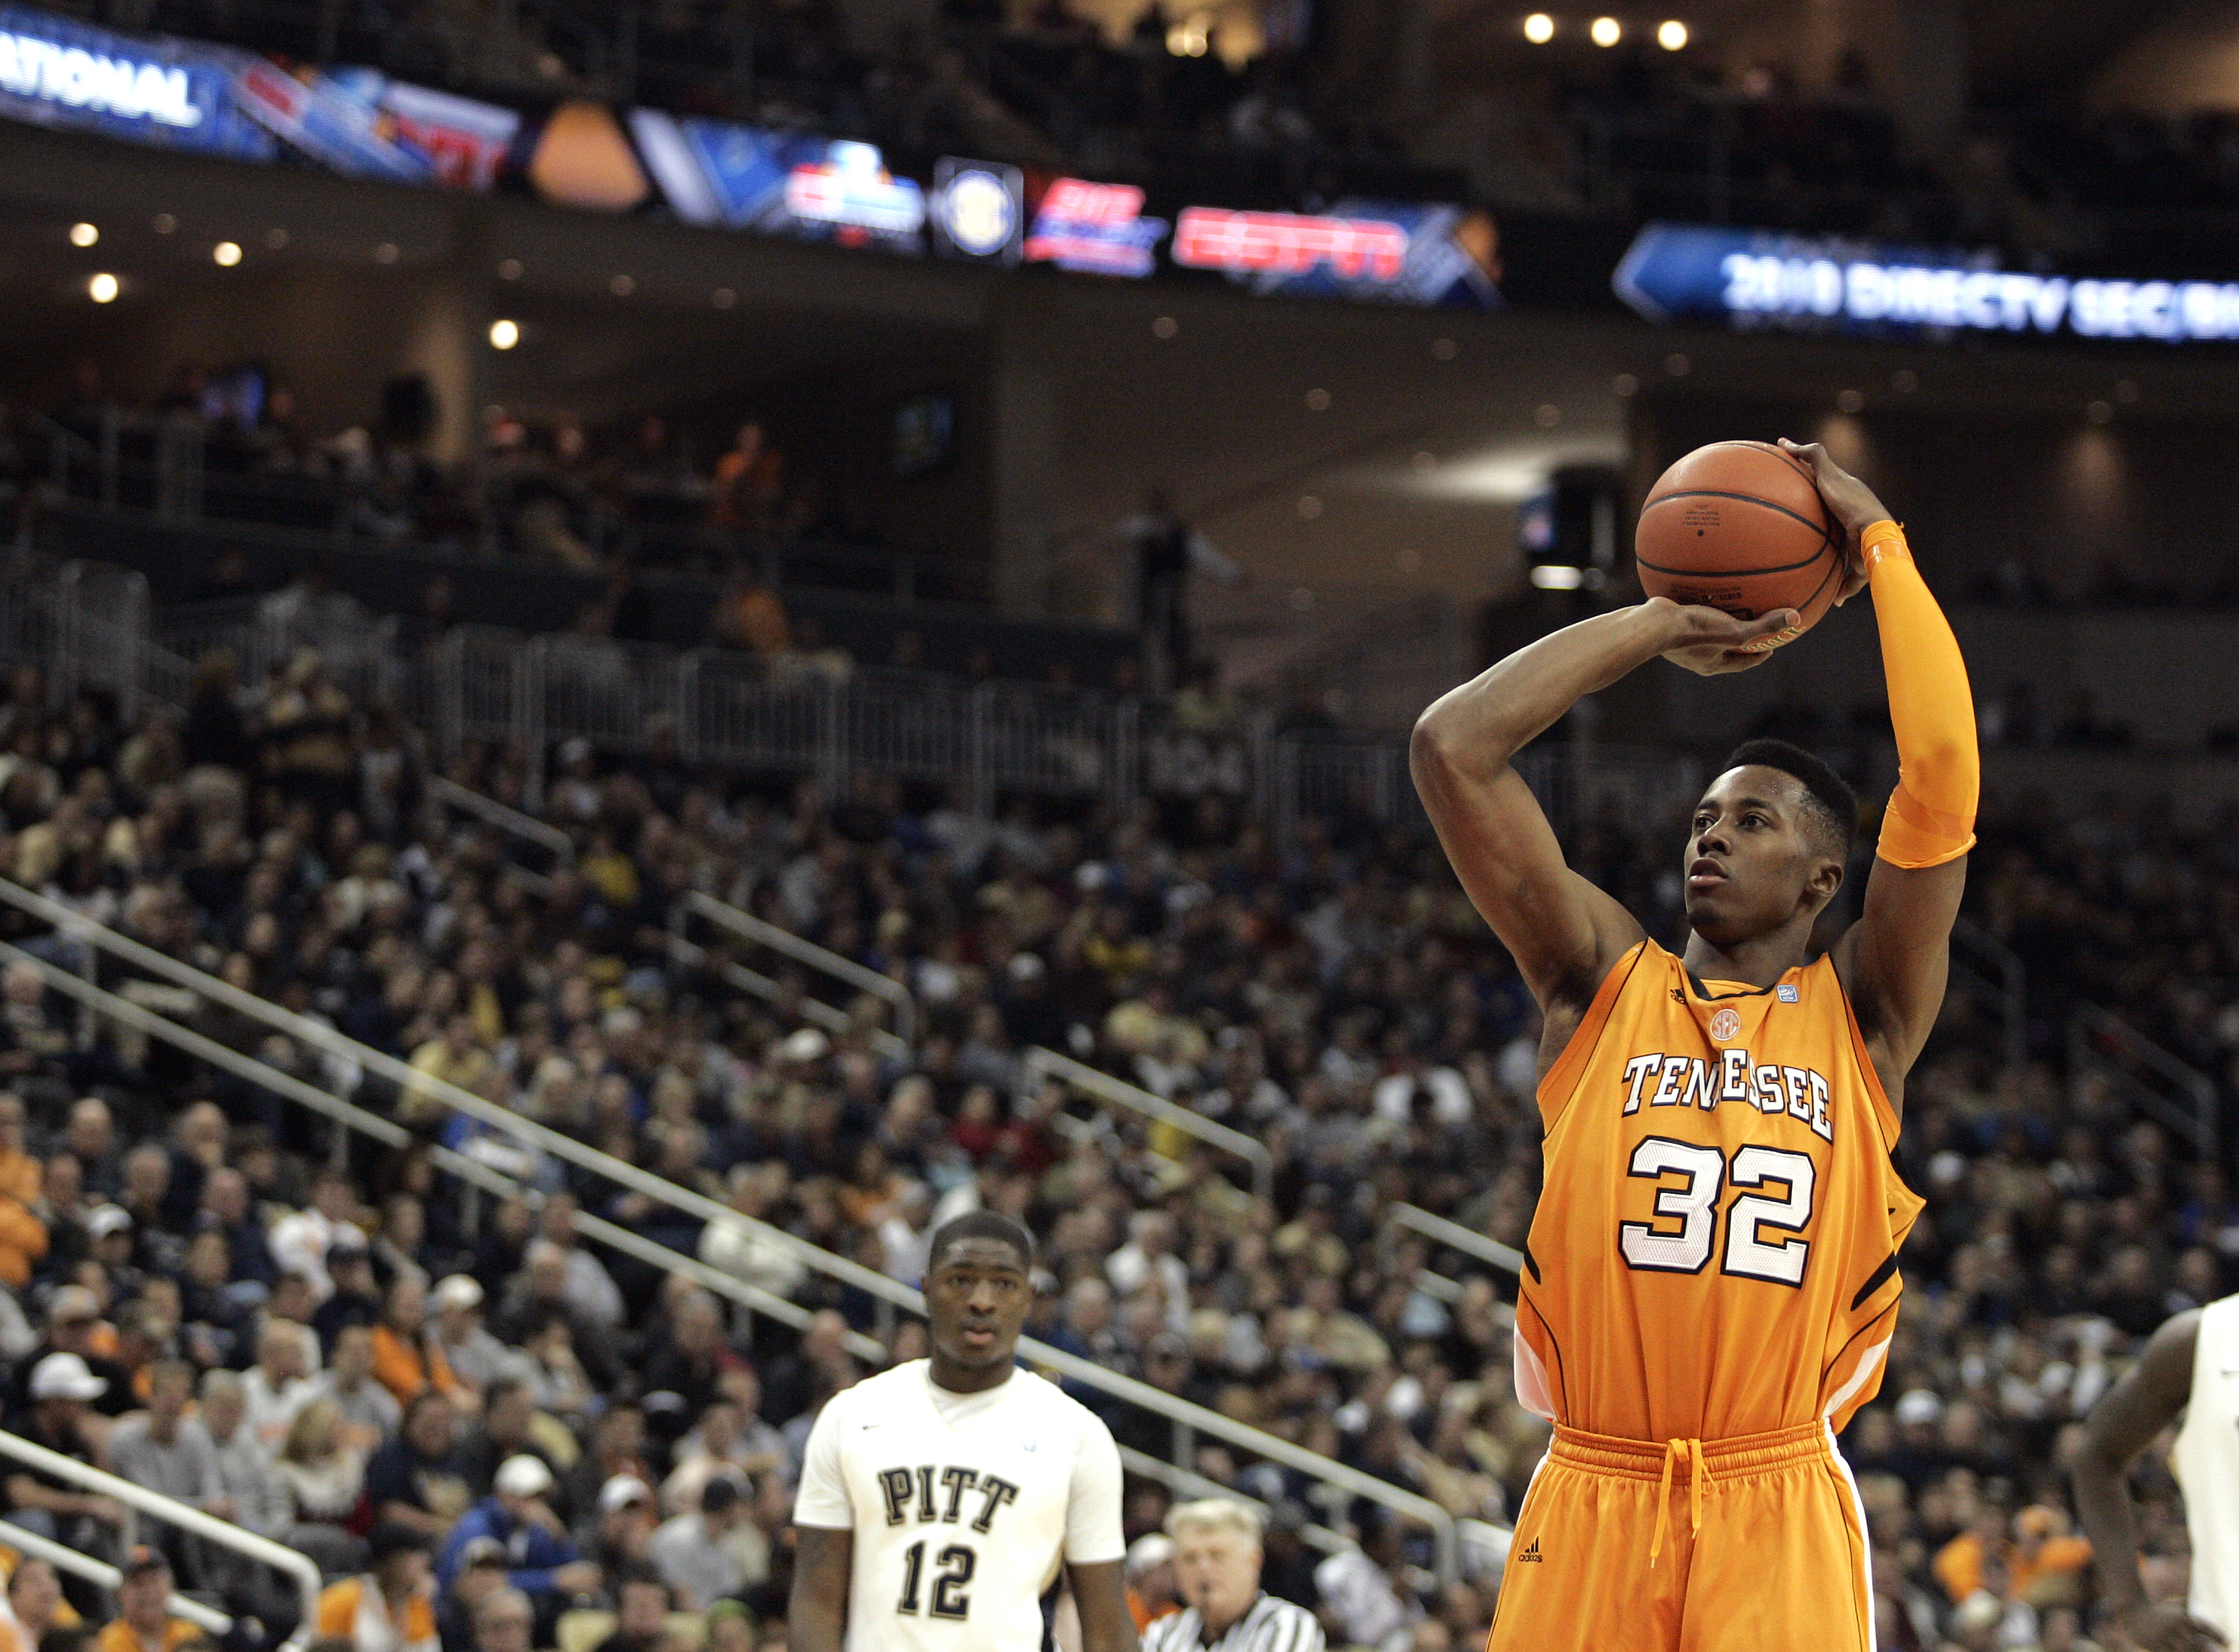 PITTSBURGH, PA - DECEMBER 11:  Scotty Hopson #32 of the Tennessee Volunteers shoots a technical against the Pittsburgh Panthers during the SEC/BIG EAST Invitational at Consol Energy Center on December 11, 2010 in Pittsburgh, Pennsylvania.  (Photo by Justi